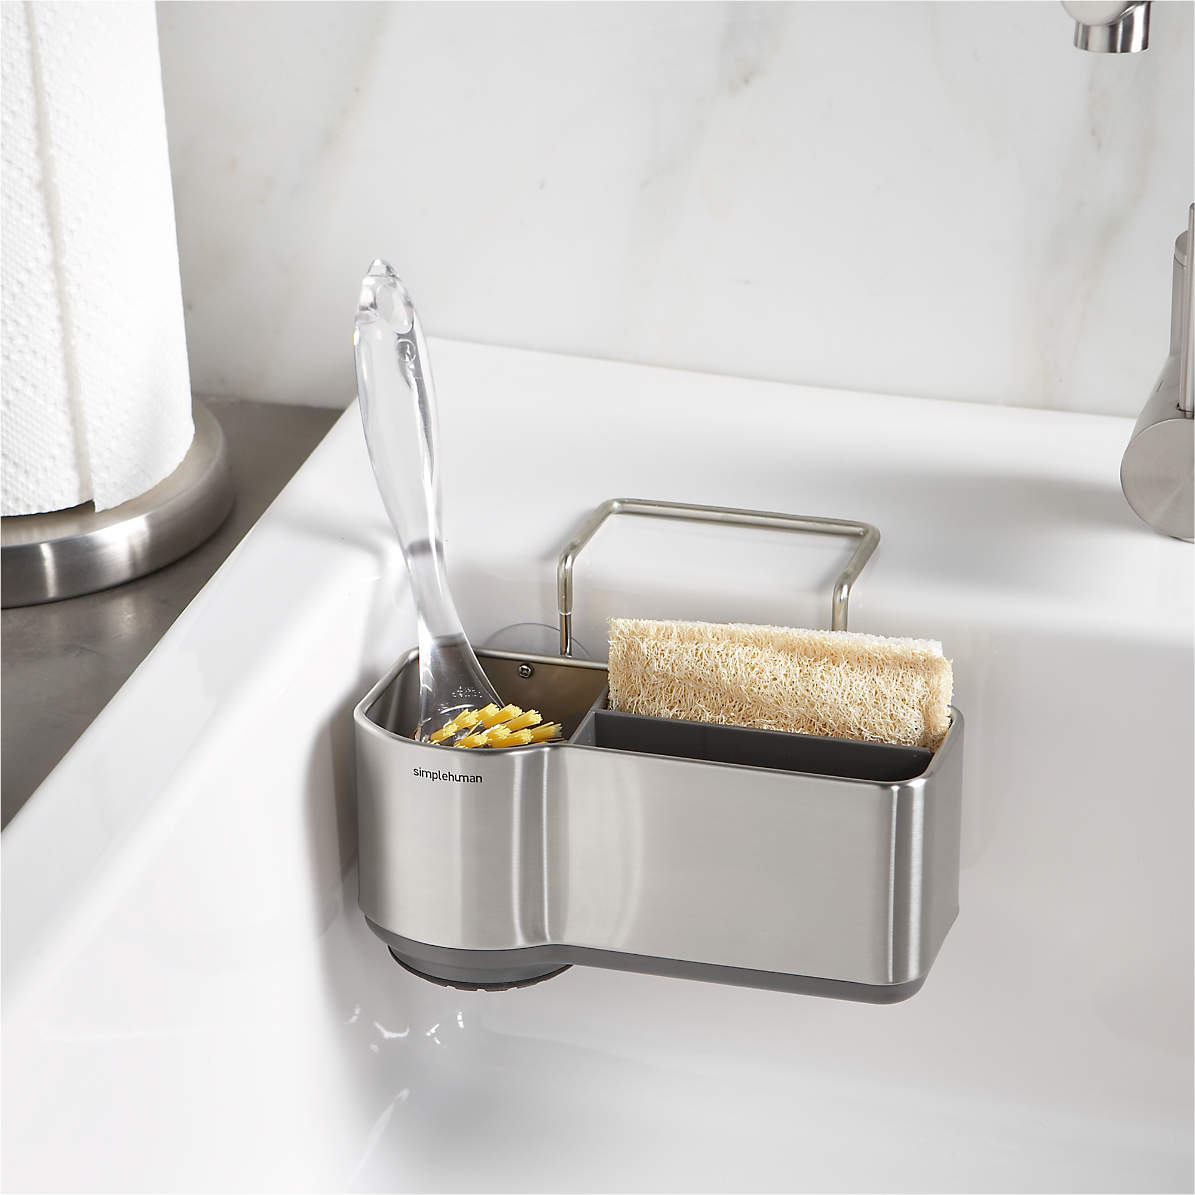 Simplehuman Sink Caddy Reviews Crate And Barrel